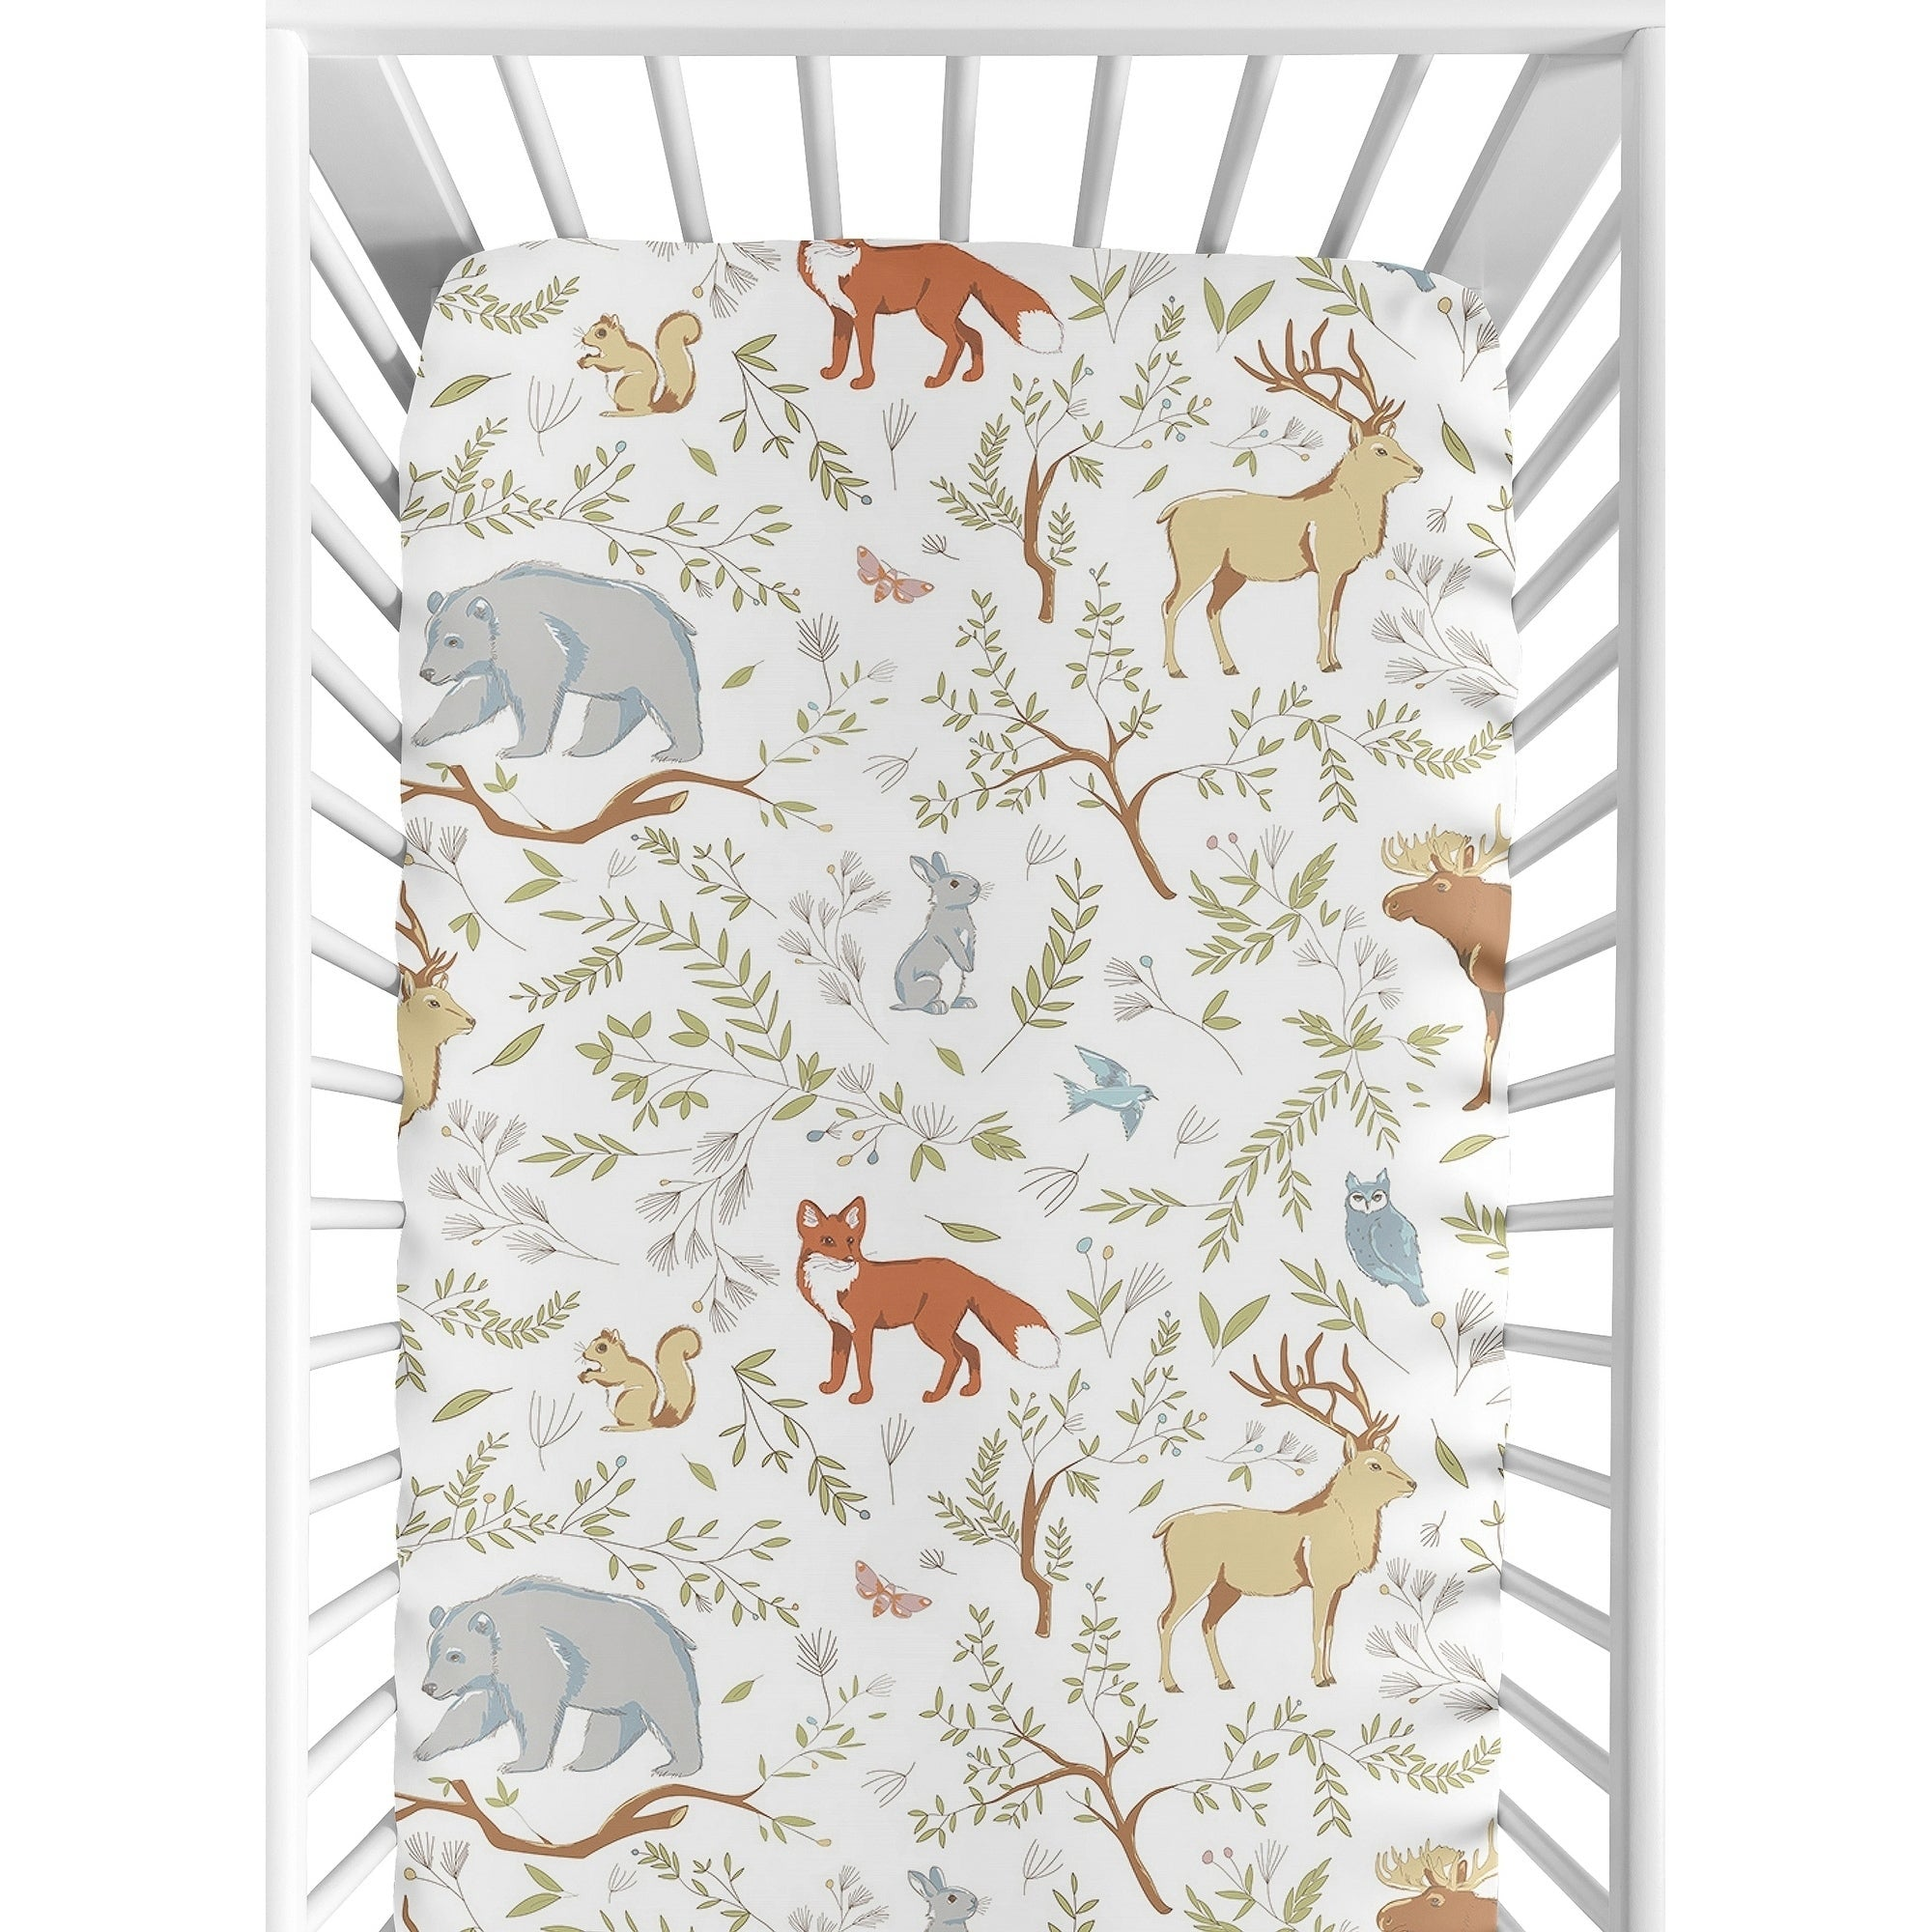 Woodland Toile Collection Fitted Crib Sheet Multi Color Animal Print Neutral Nature Cotton - Diamond Home USA